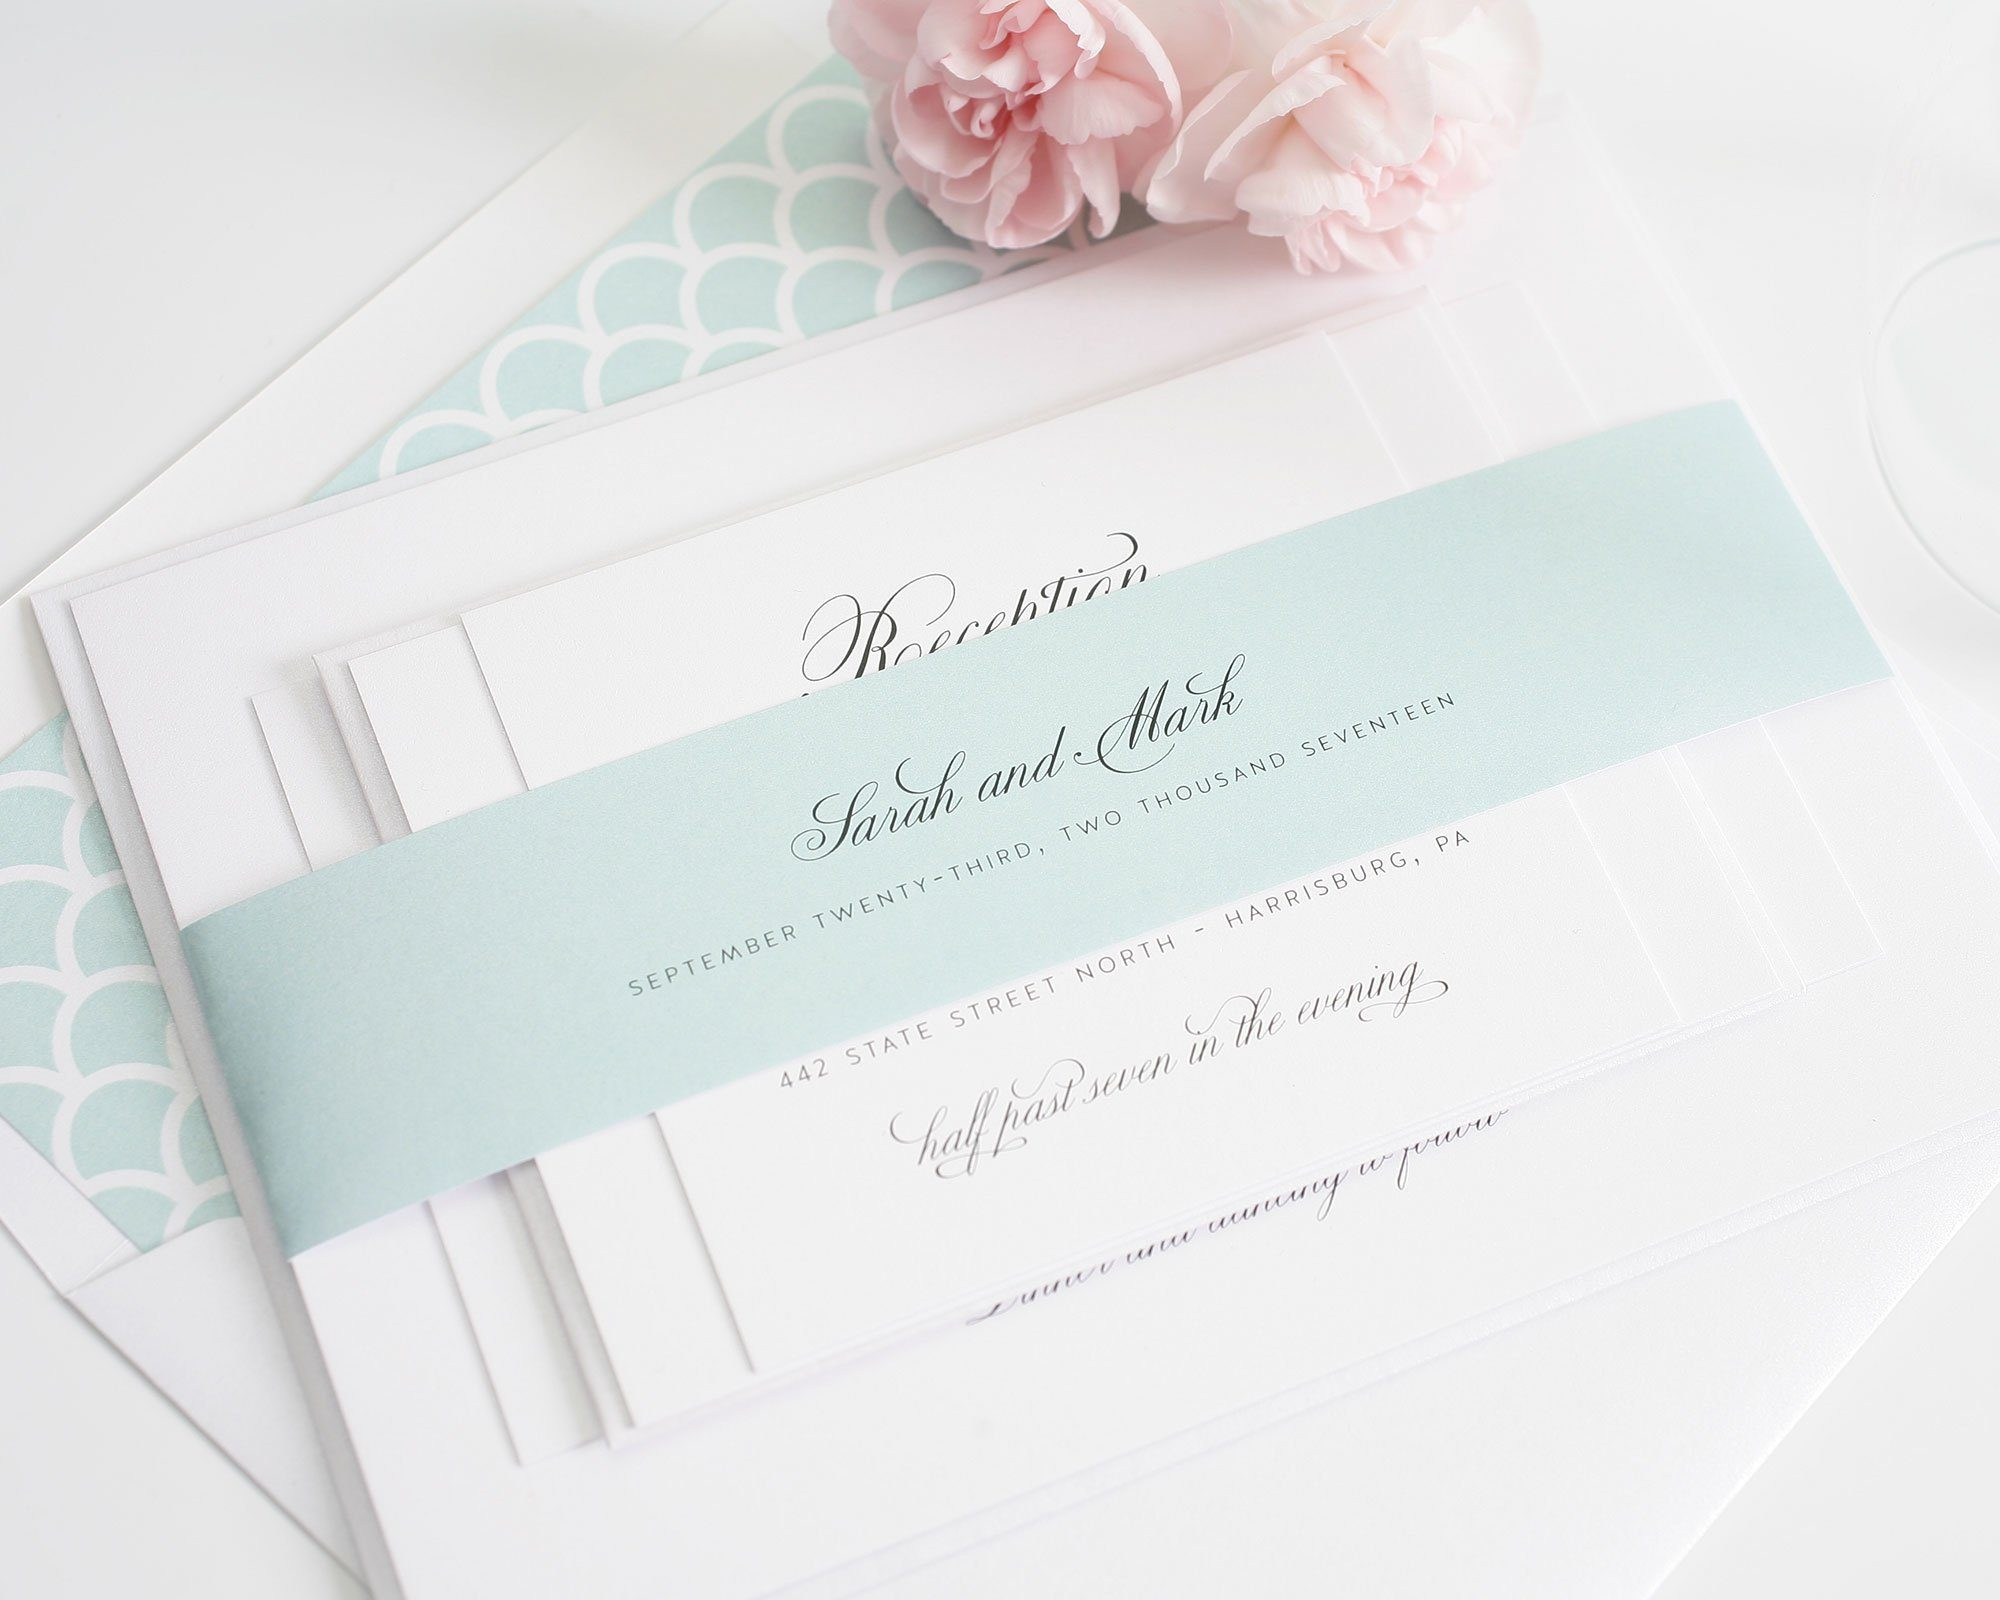 Top 10 Most Loved Wedding Invitations from Shine Wedding Invitations